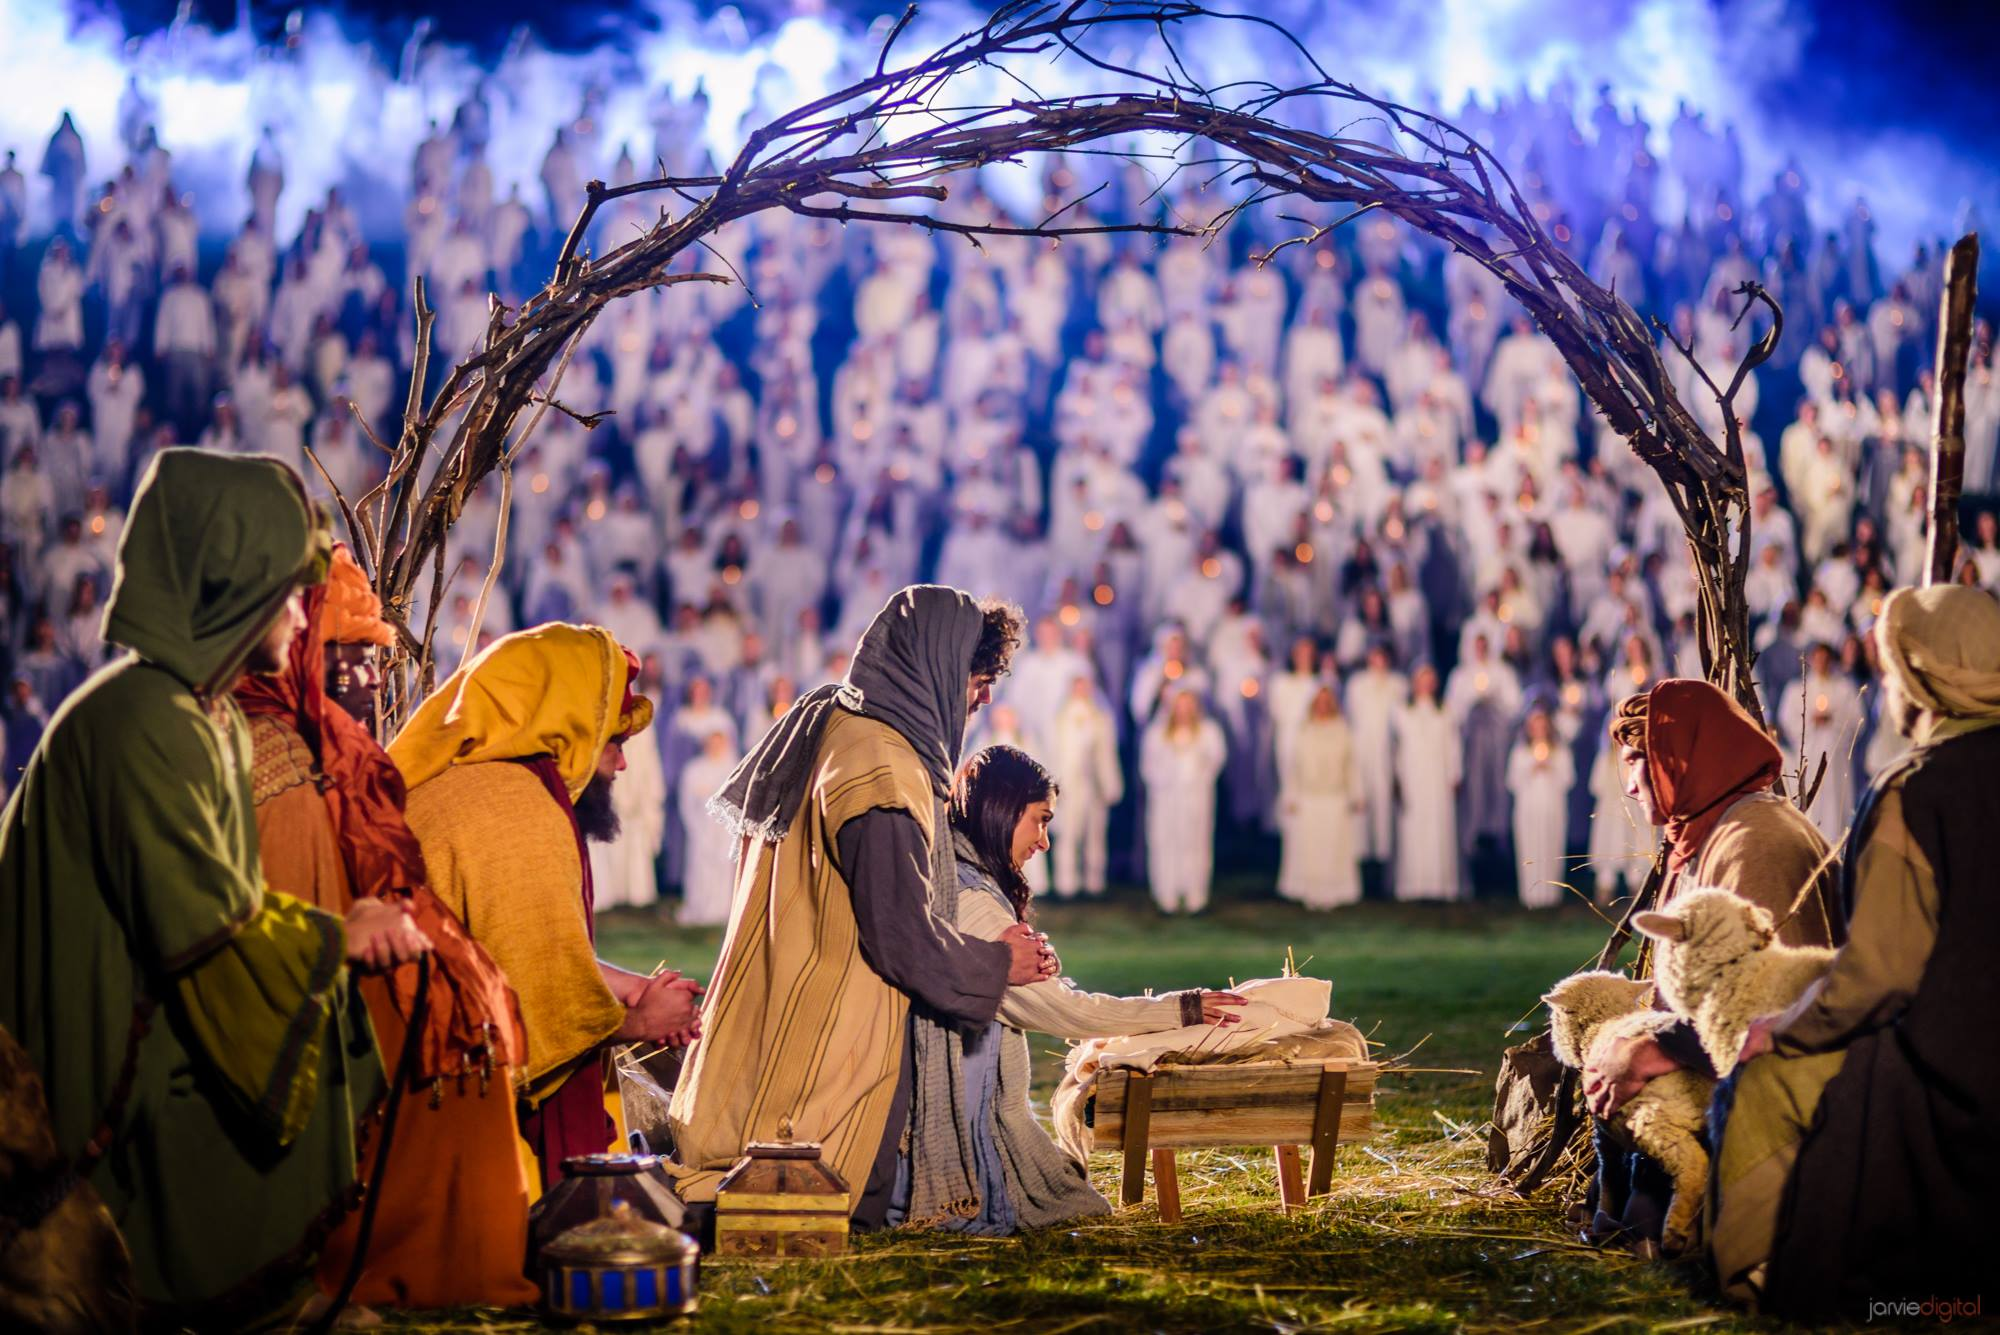 HUGE YouTubers Collaborate to Make World-Record Nativity Video to #ShareTheGift of Christmas